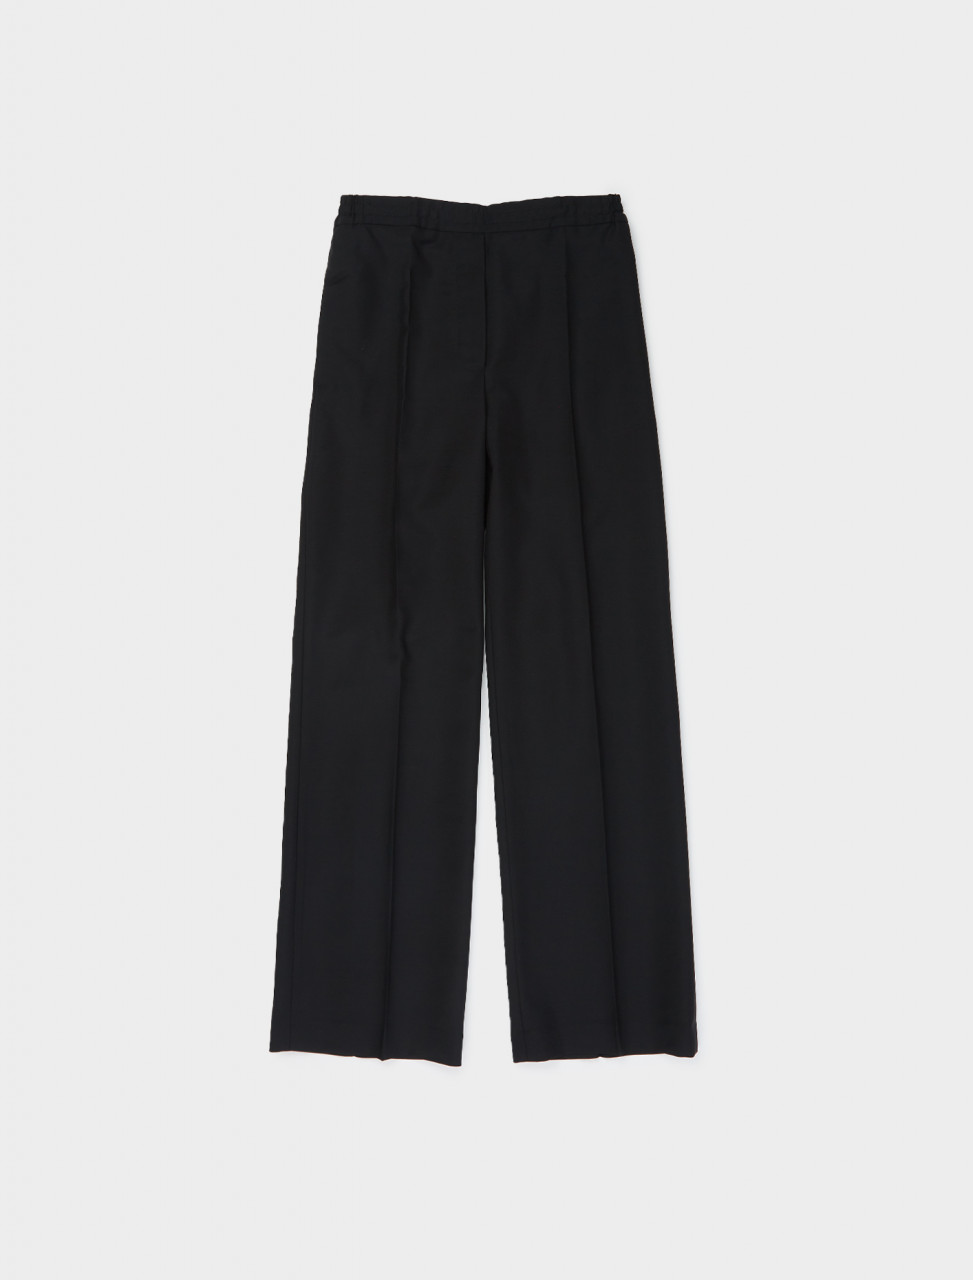 110-AK0318-900 ACNE STUDIOS ELASTICATED WAIST TROUSER BLACK